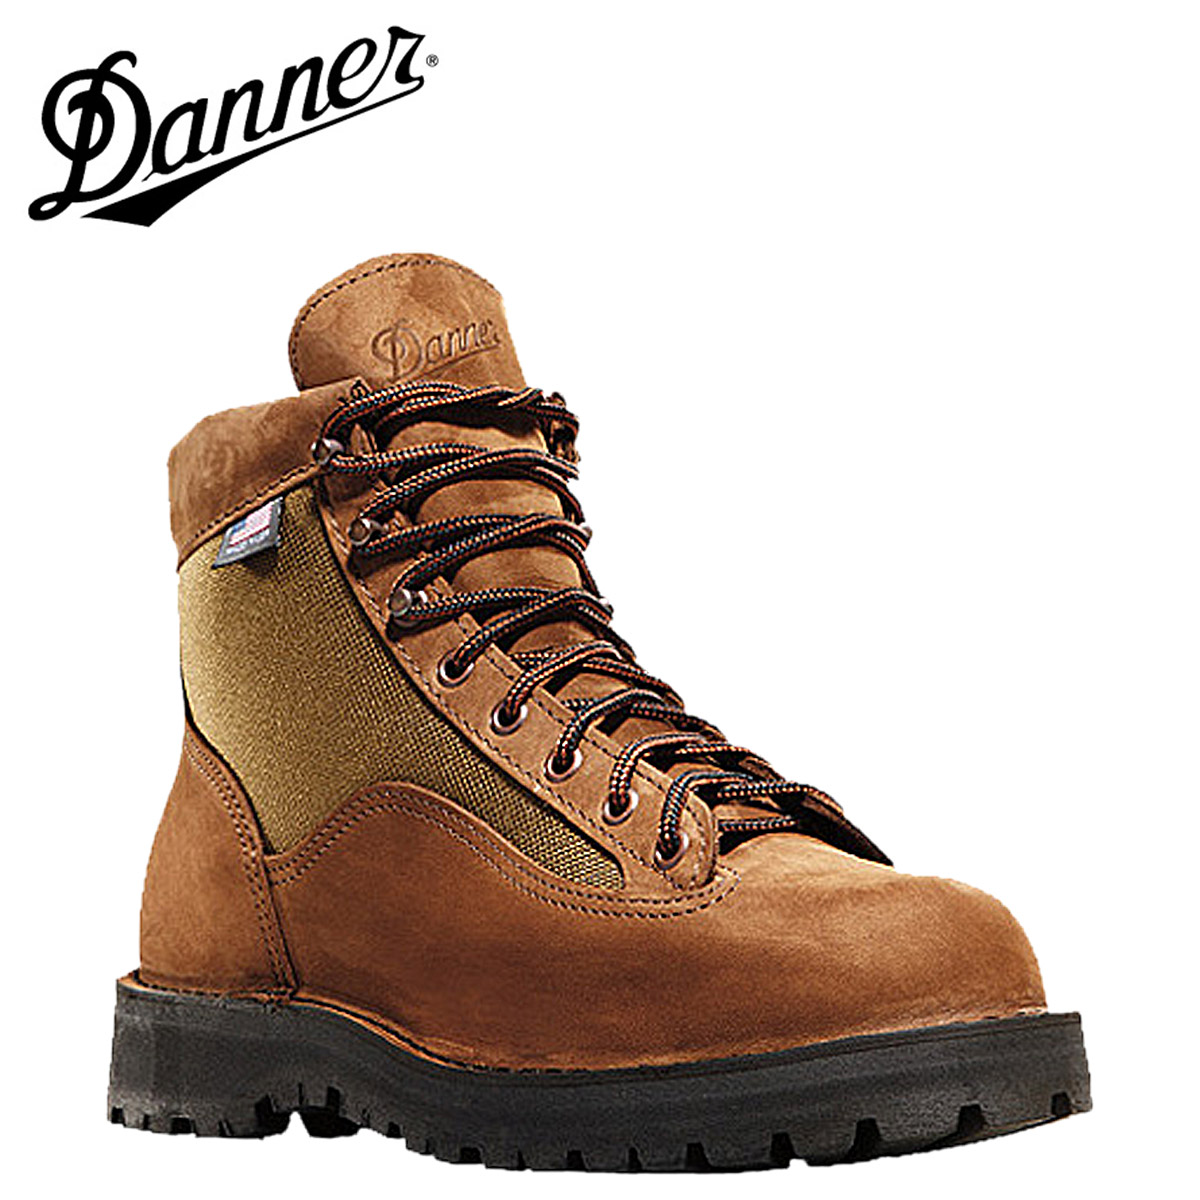 Sugar Online Shop Danner Danner Dana Light Hiking Boots